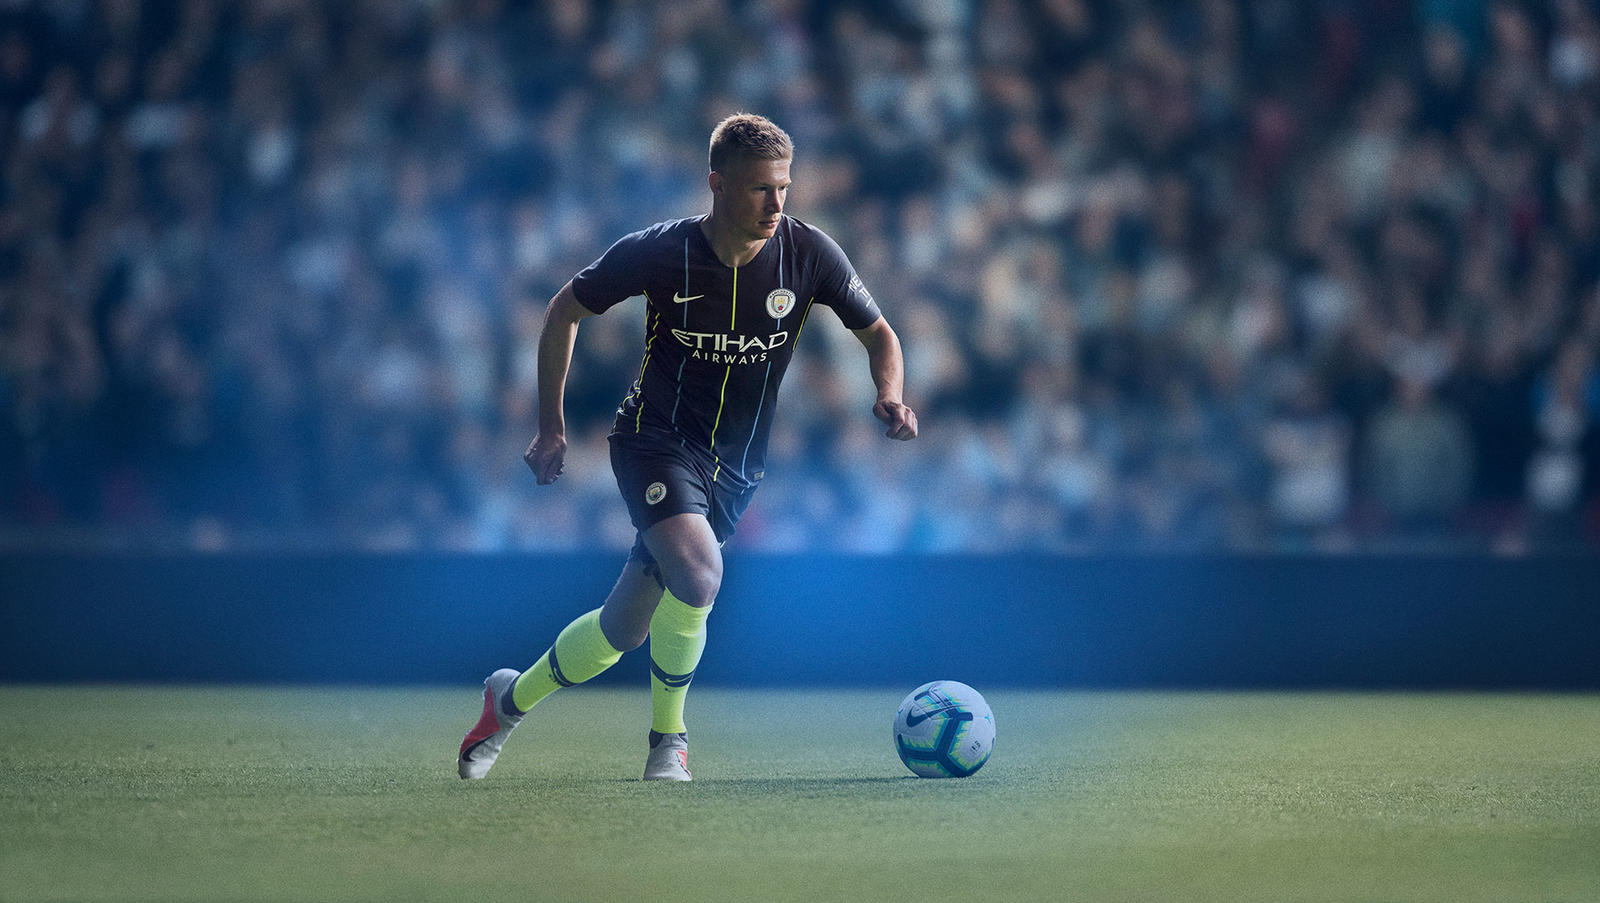 Manchester City's Away Kits are a Battle Cry from the Club's Watershed Match 3